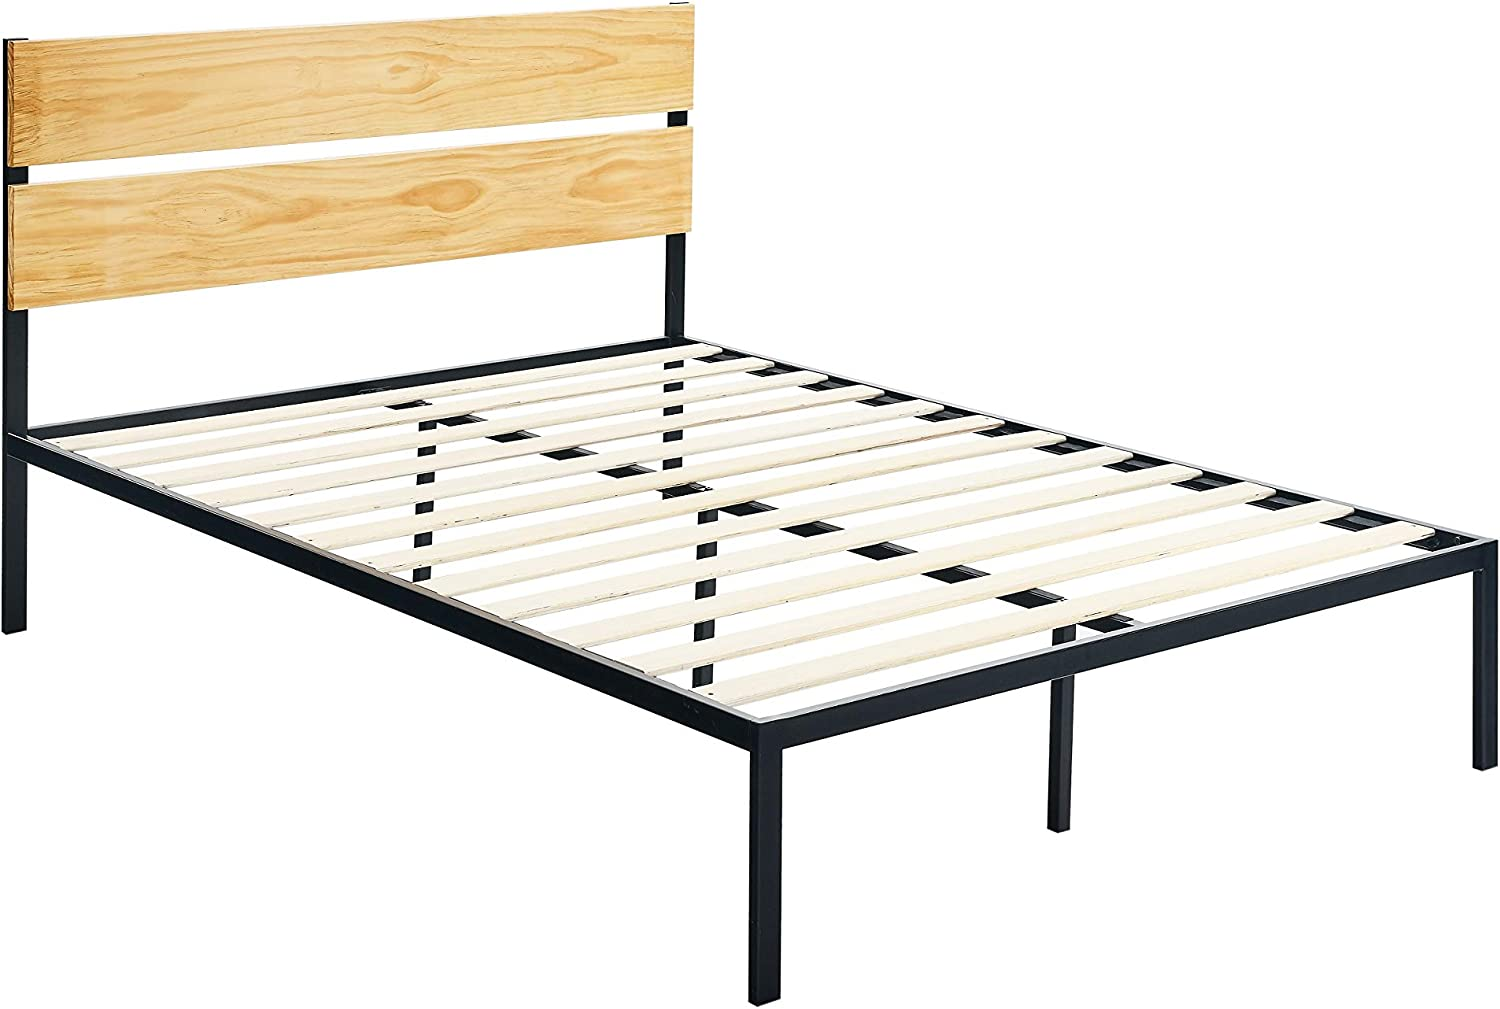 AmazonBasics Arielle Metal and Wood Platform Bed with Headboard - Wood Slat Support, Queen